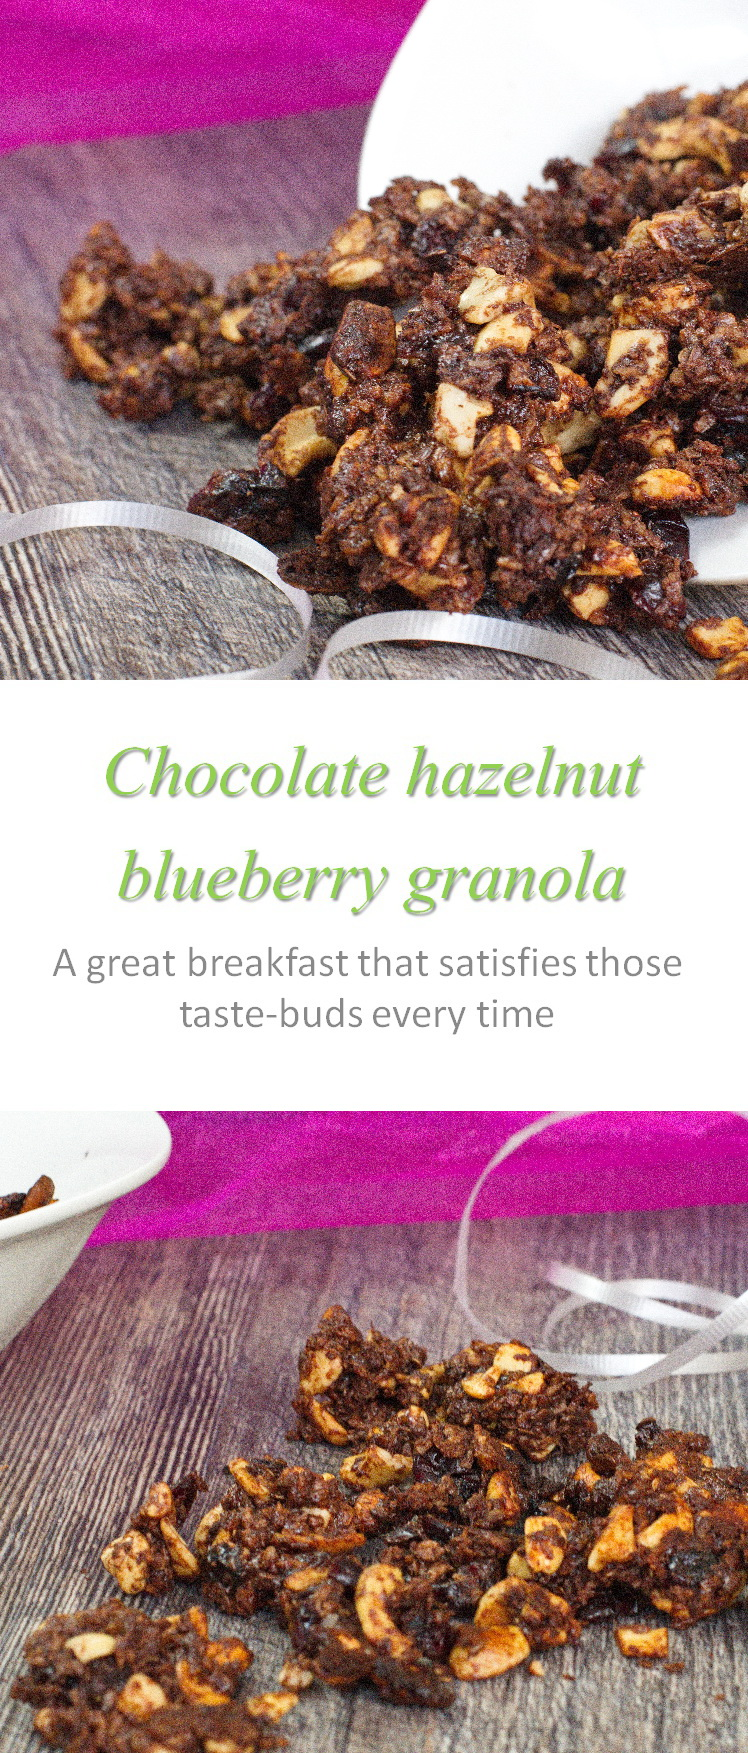 Chocolate hazelnut blueberry granola - a healthy and yummy way to have chocolate for breakfast! #granola